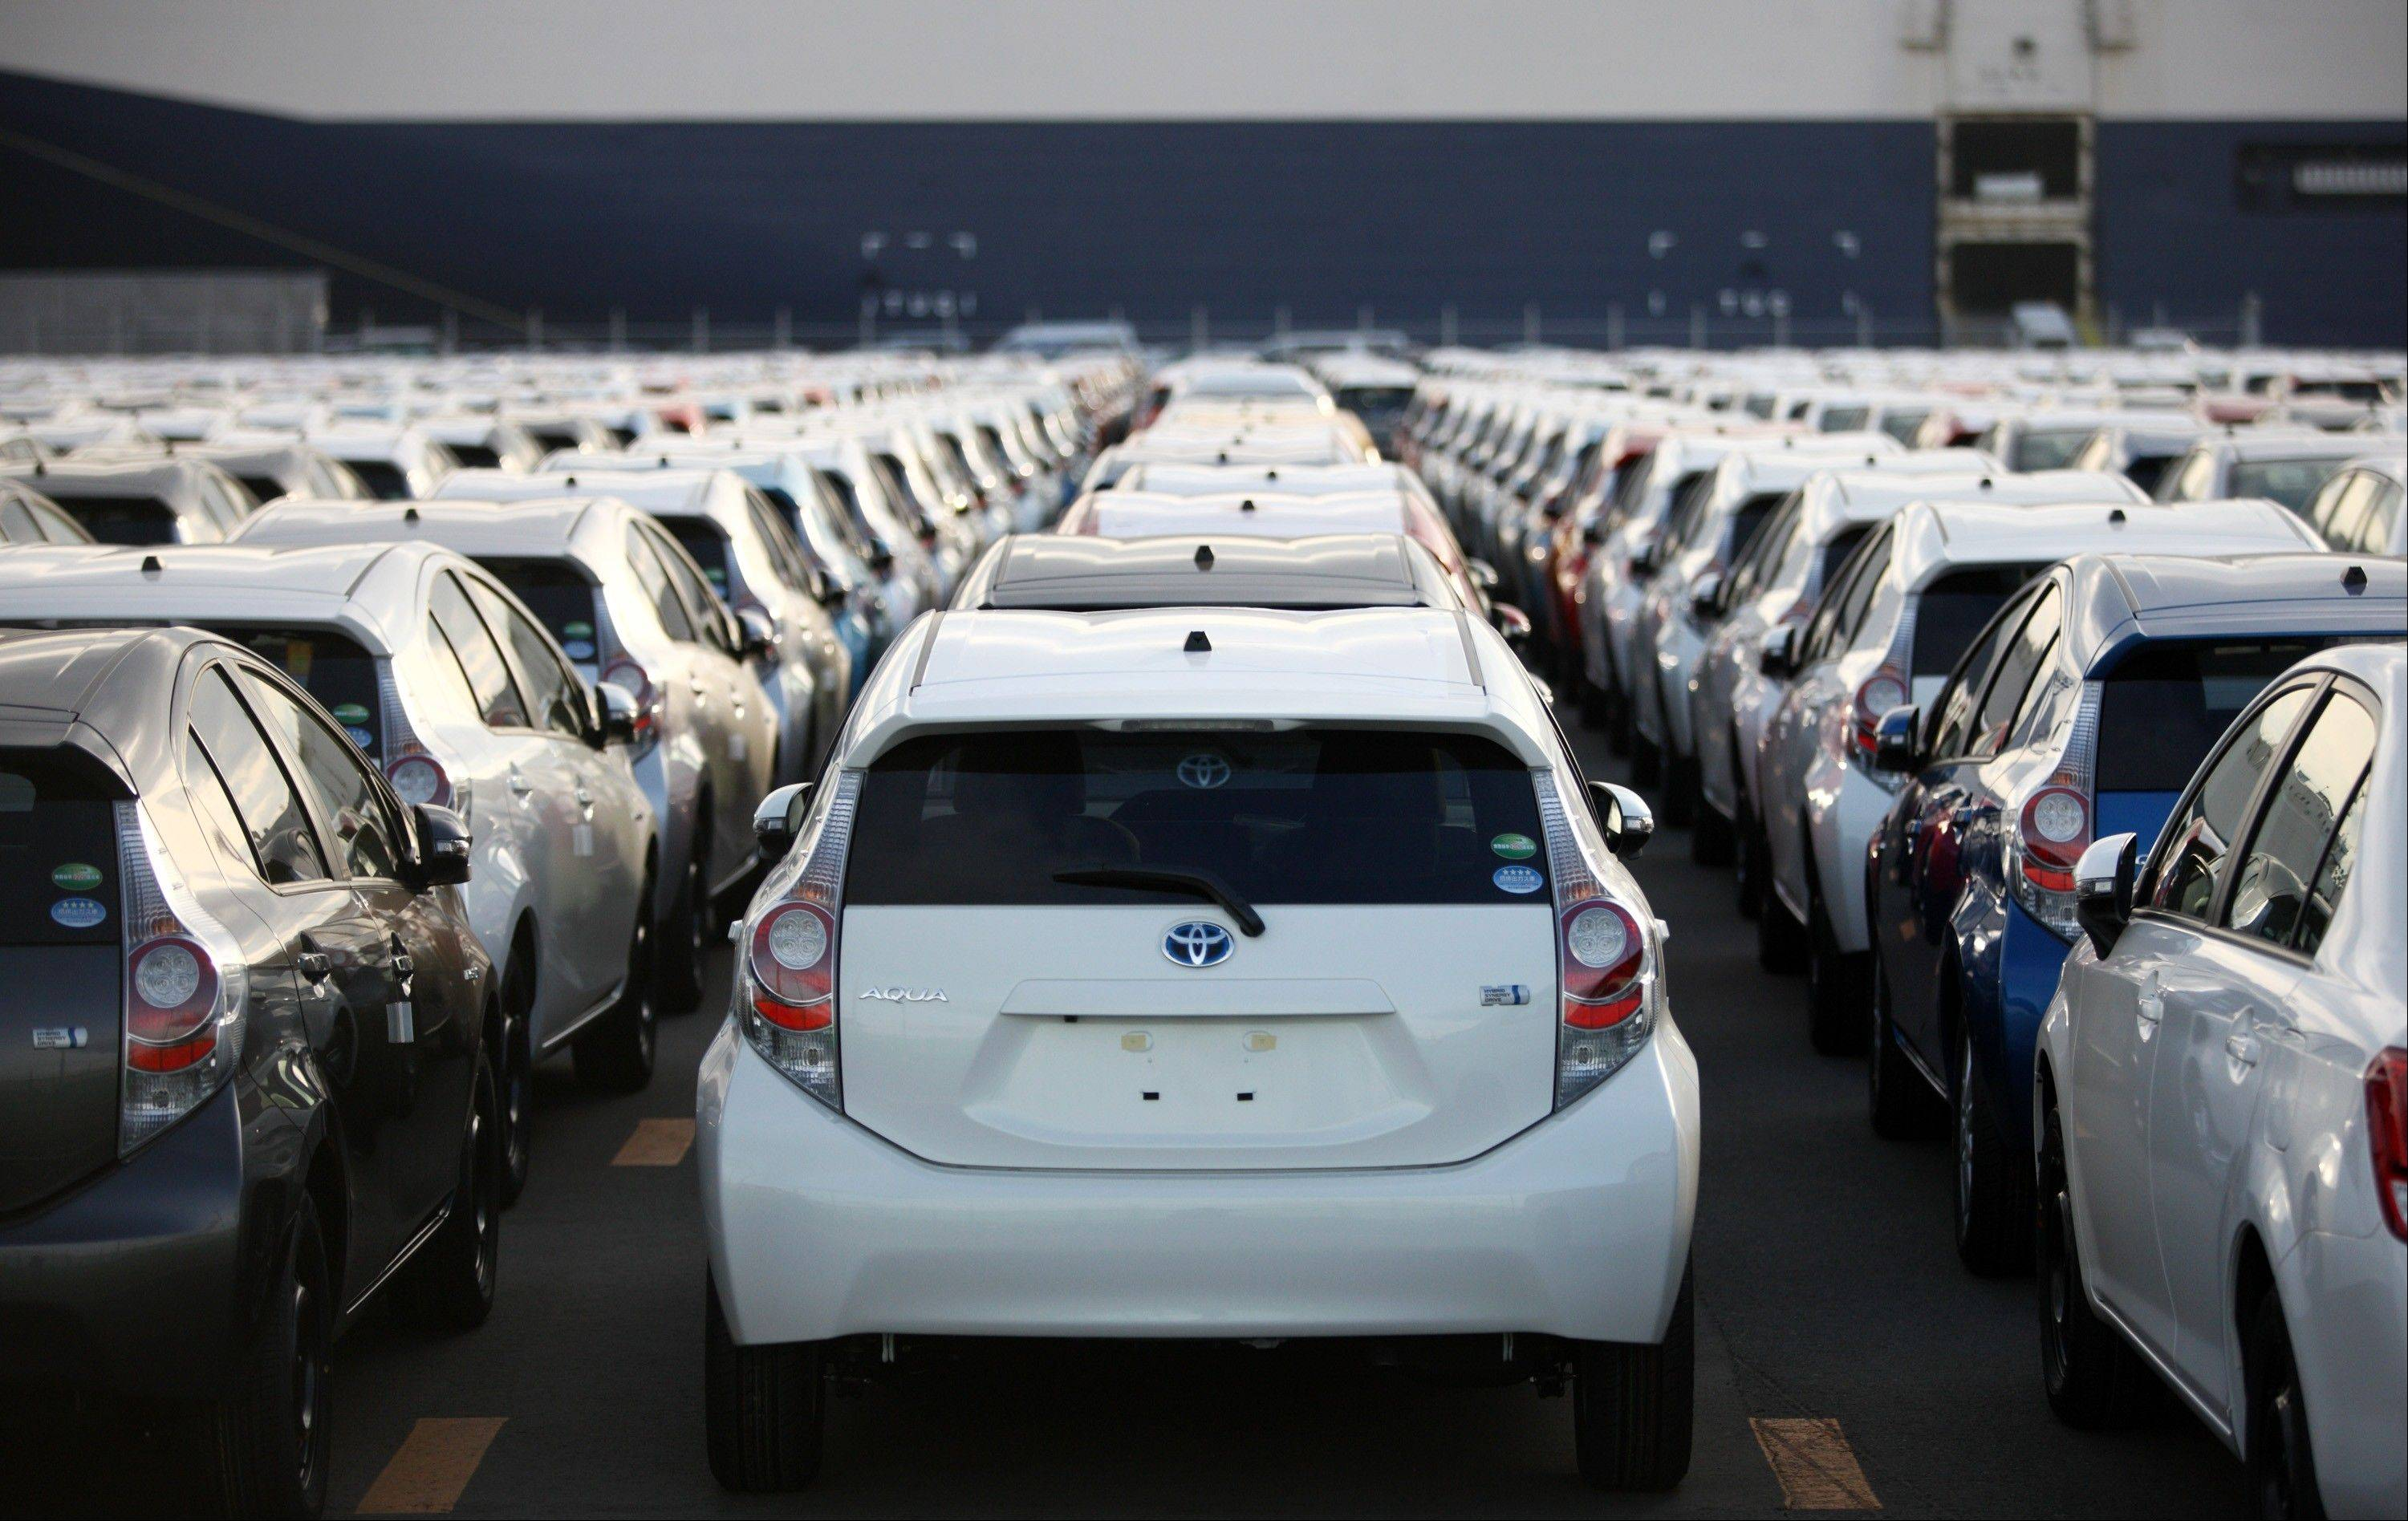 Toyota Motor Corp. is poised to take back the title of world's biggest automaker for 2012, as Volkswagen AG fights General Motors Co. for second place heading into the final weeks.